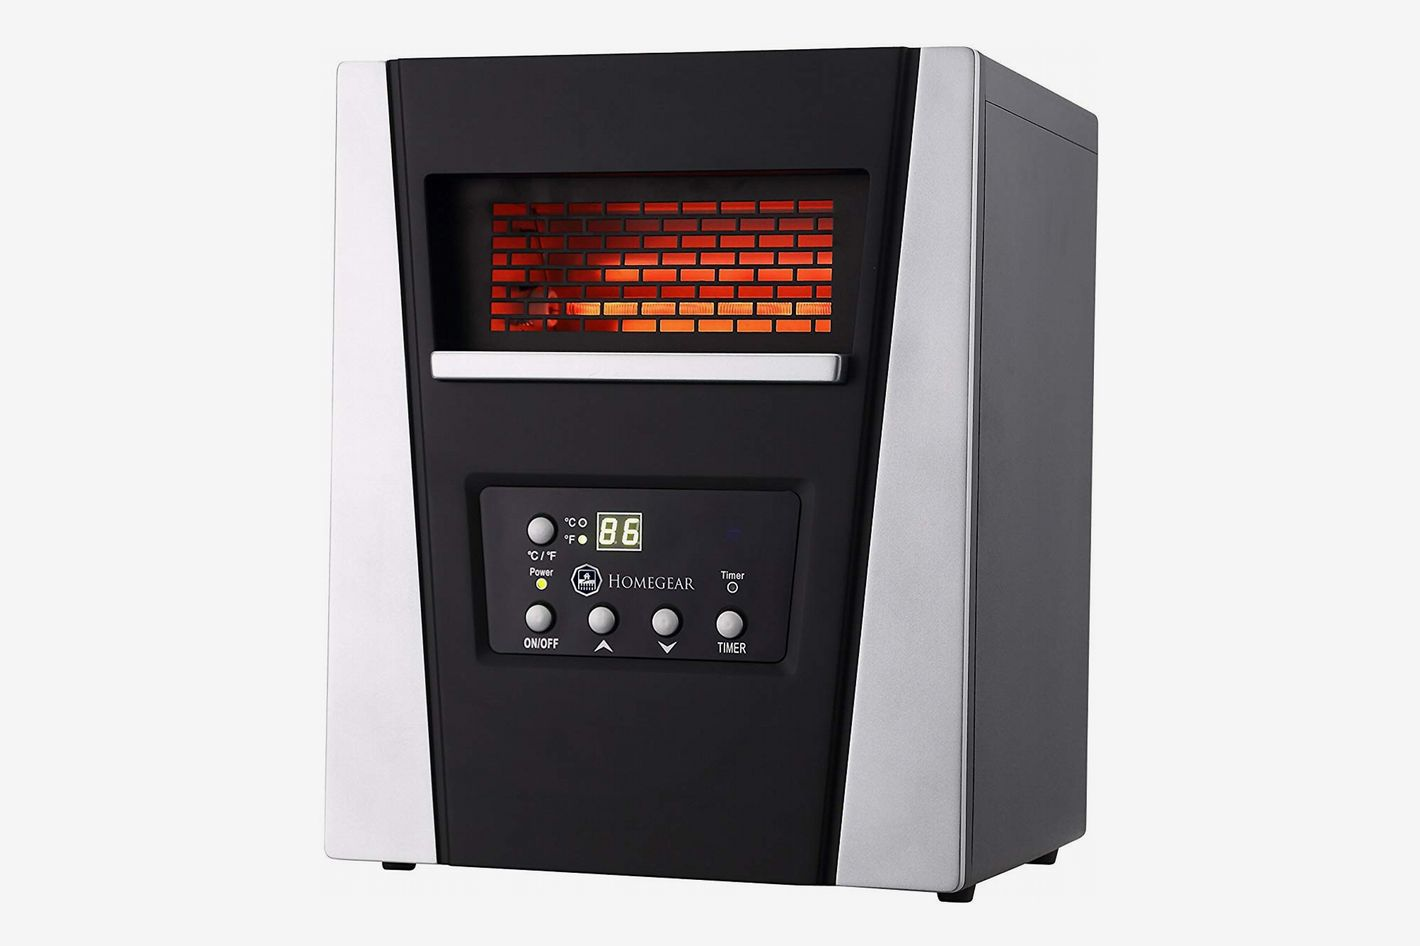 Homegear 1500 Sq Ft Infrared Portable E Heater At